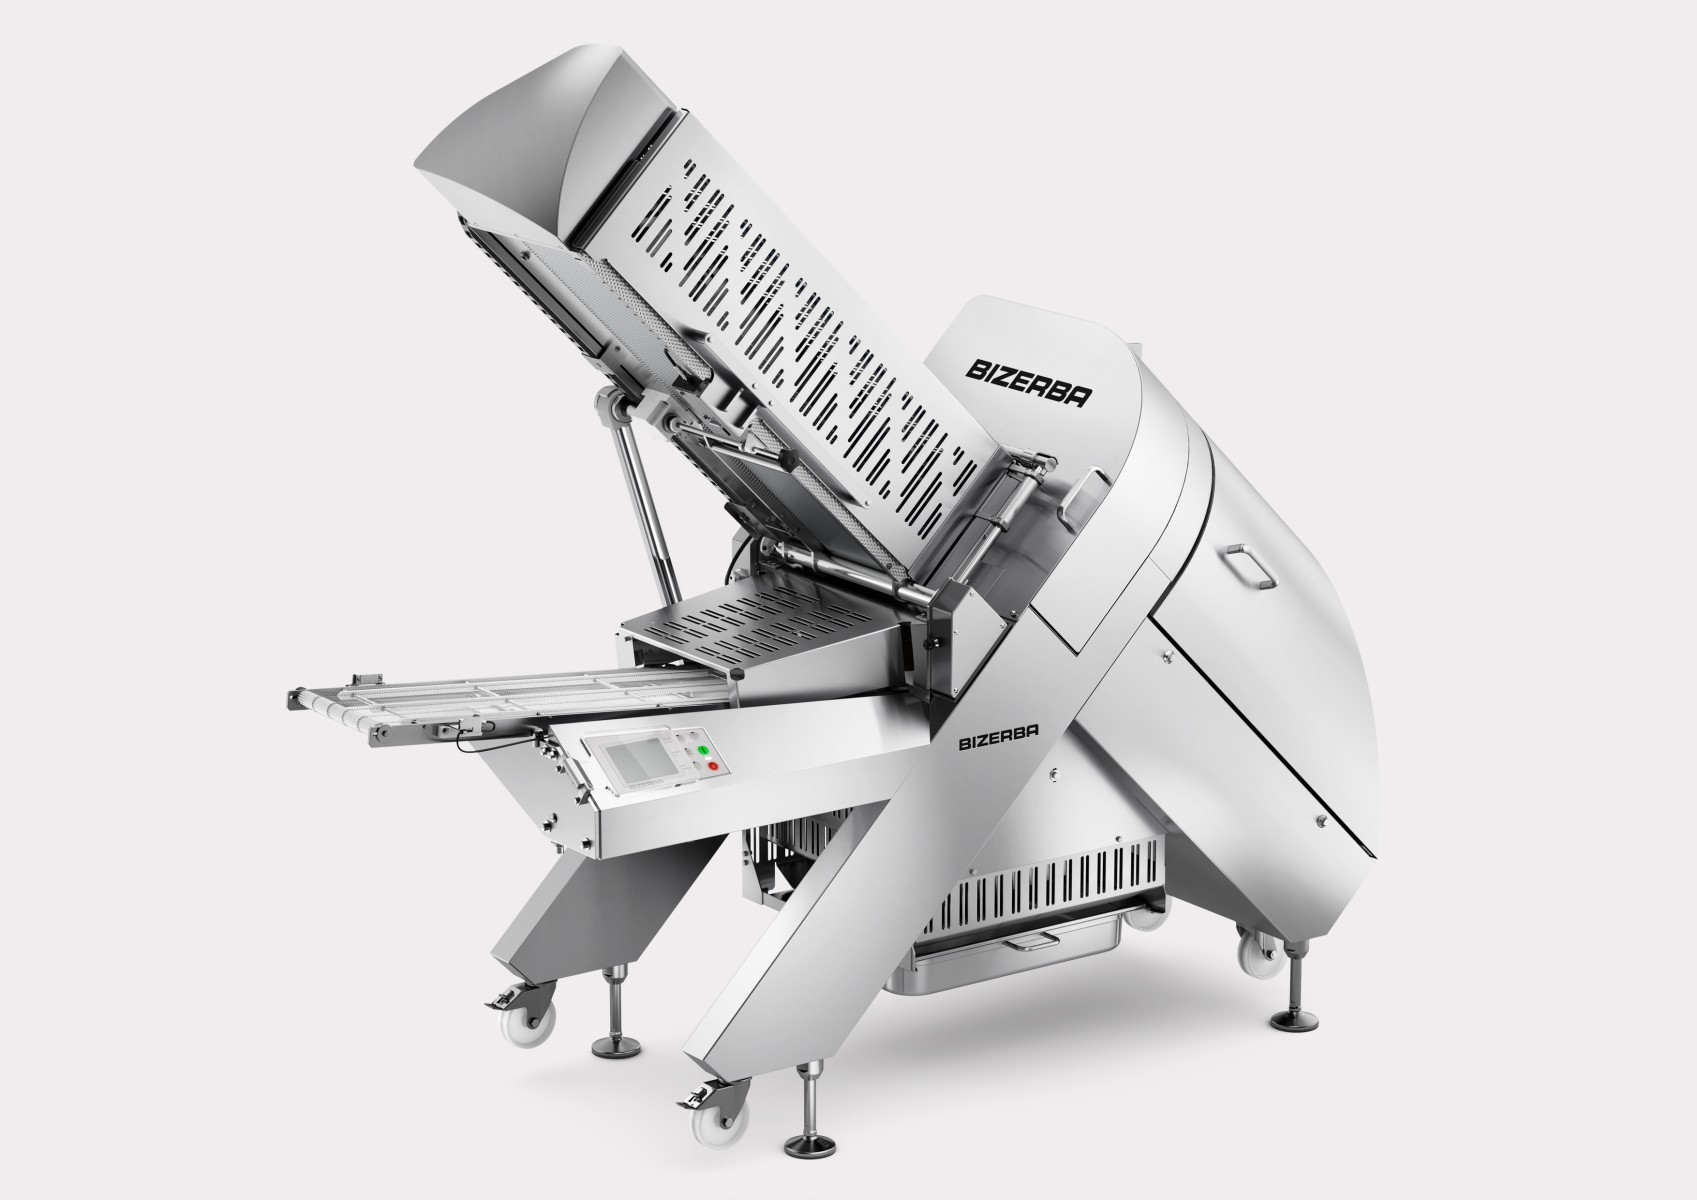 As an all-in-one device, the A660 can slice, weigh and portion a variety of slicing goods towards a specific target weight. (Image courtesy of Bizerba)